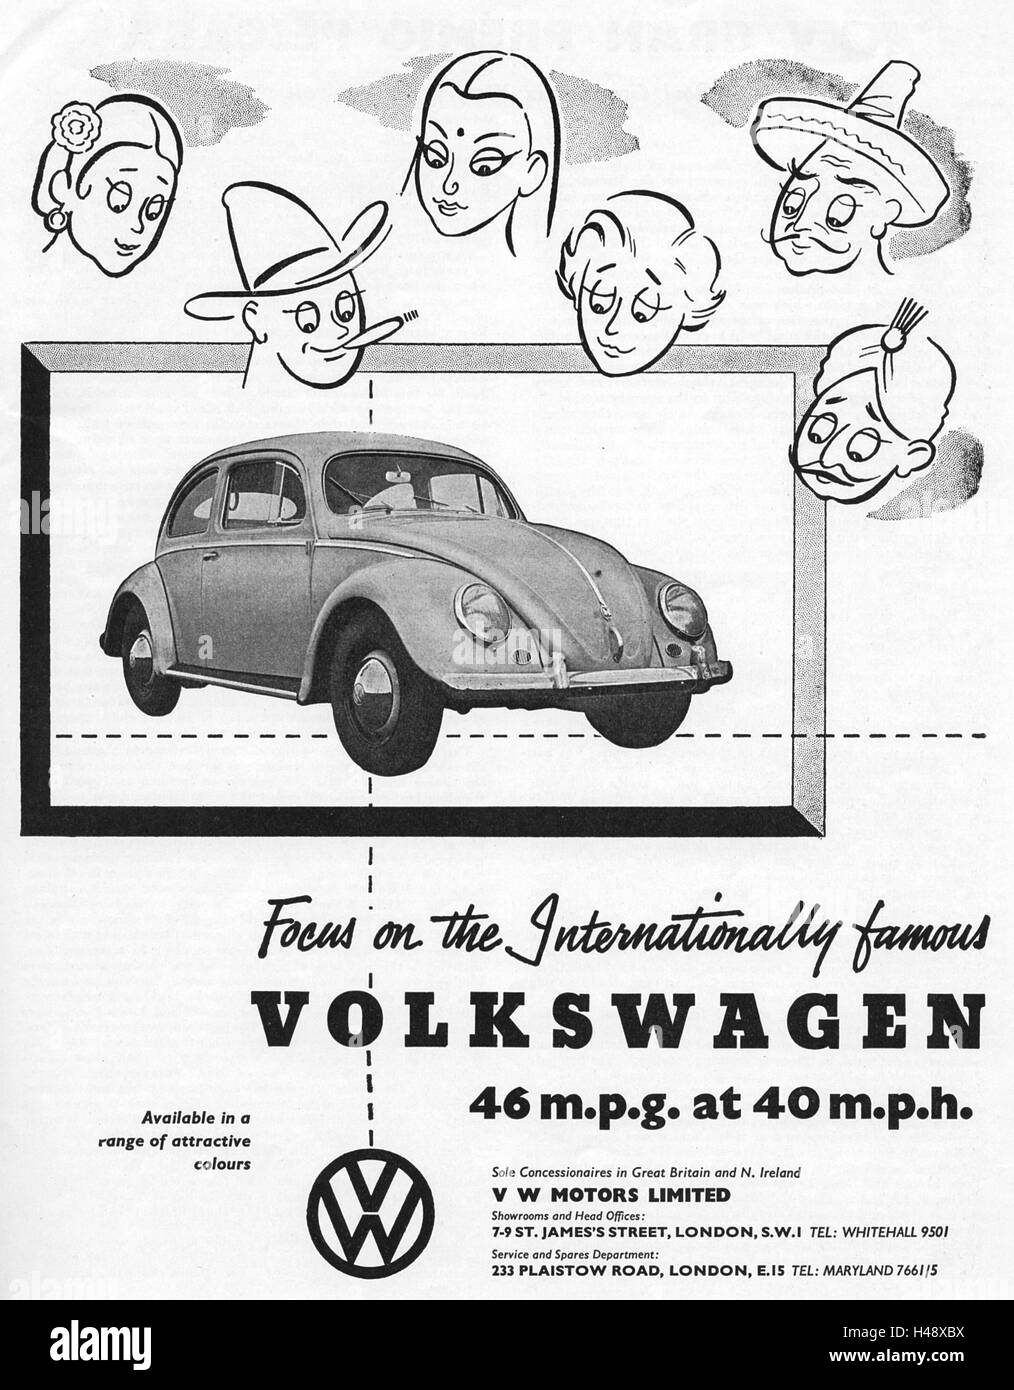 Advert for Volkswagen cars from a magazine in 1957. - Stock Image